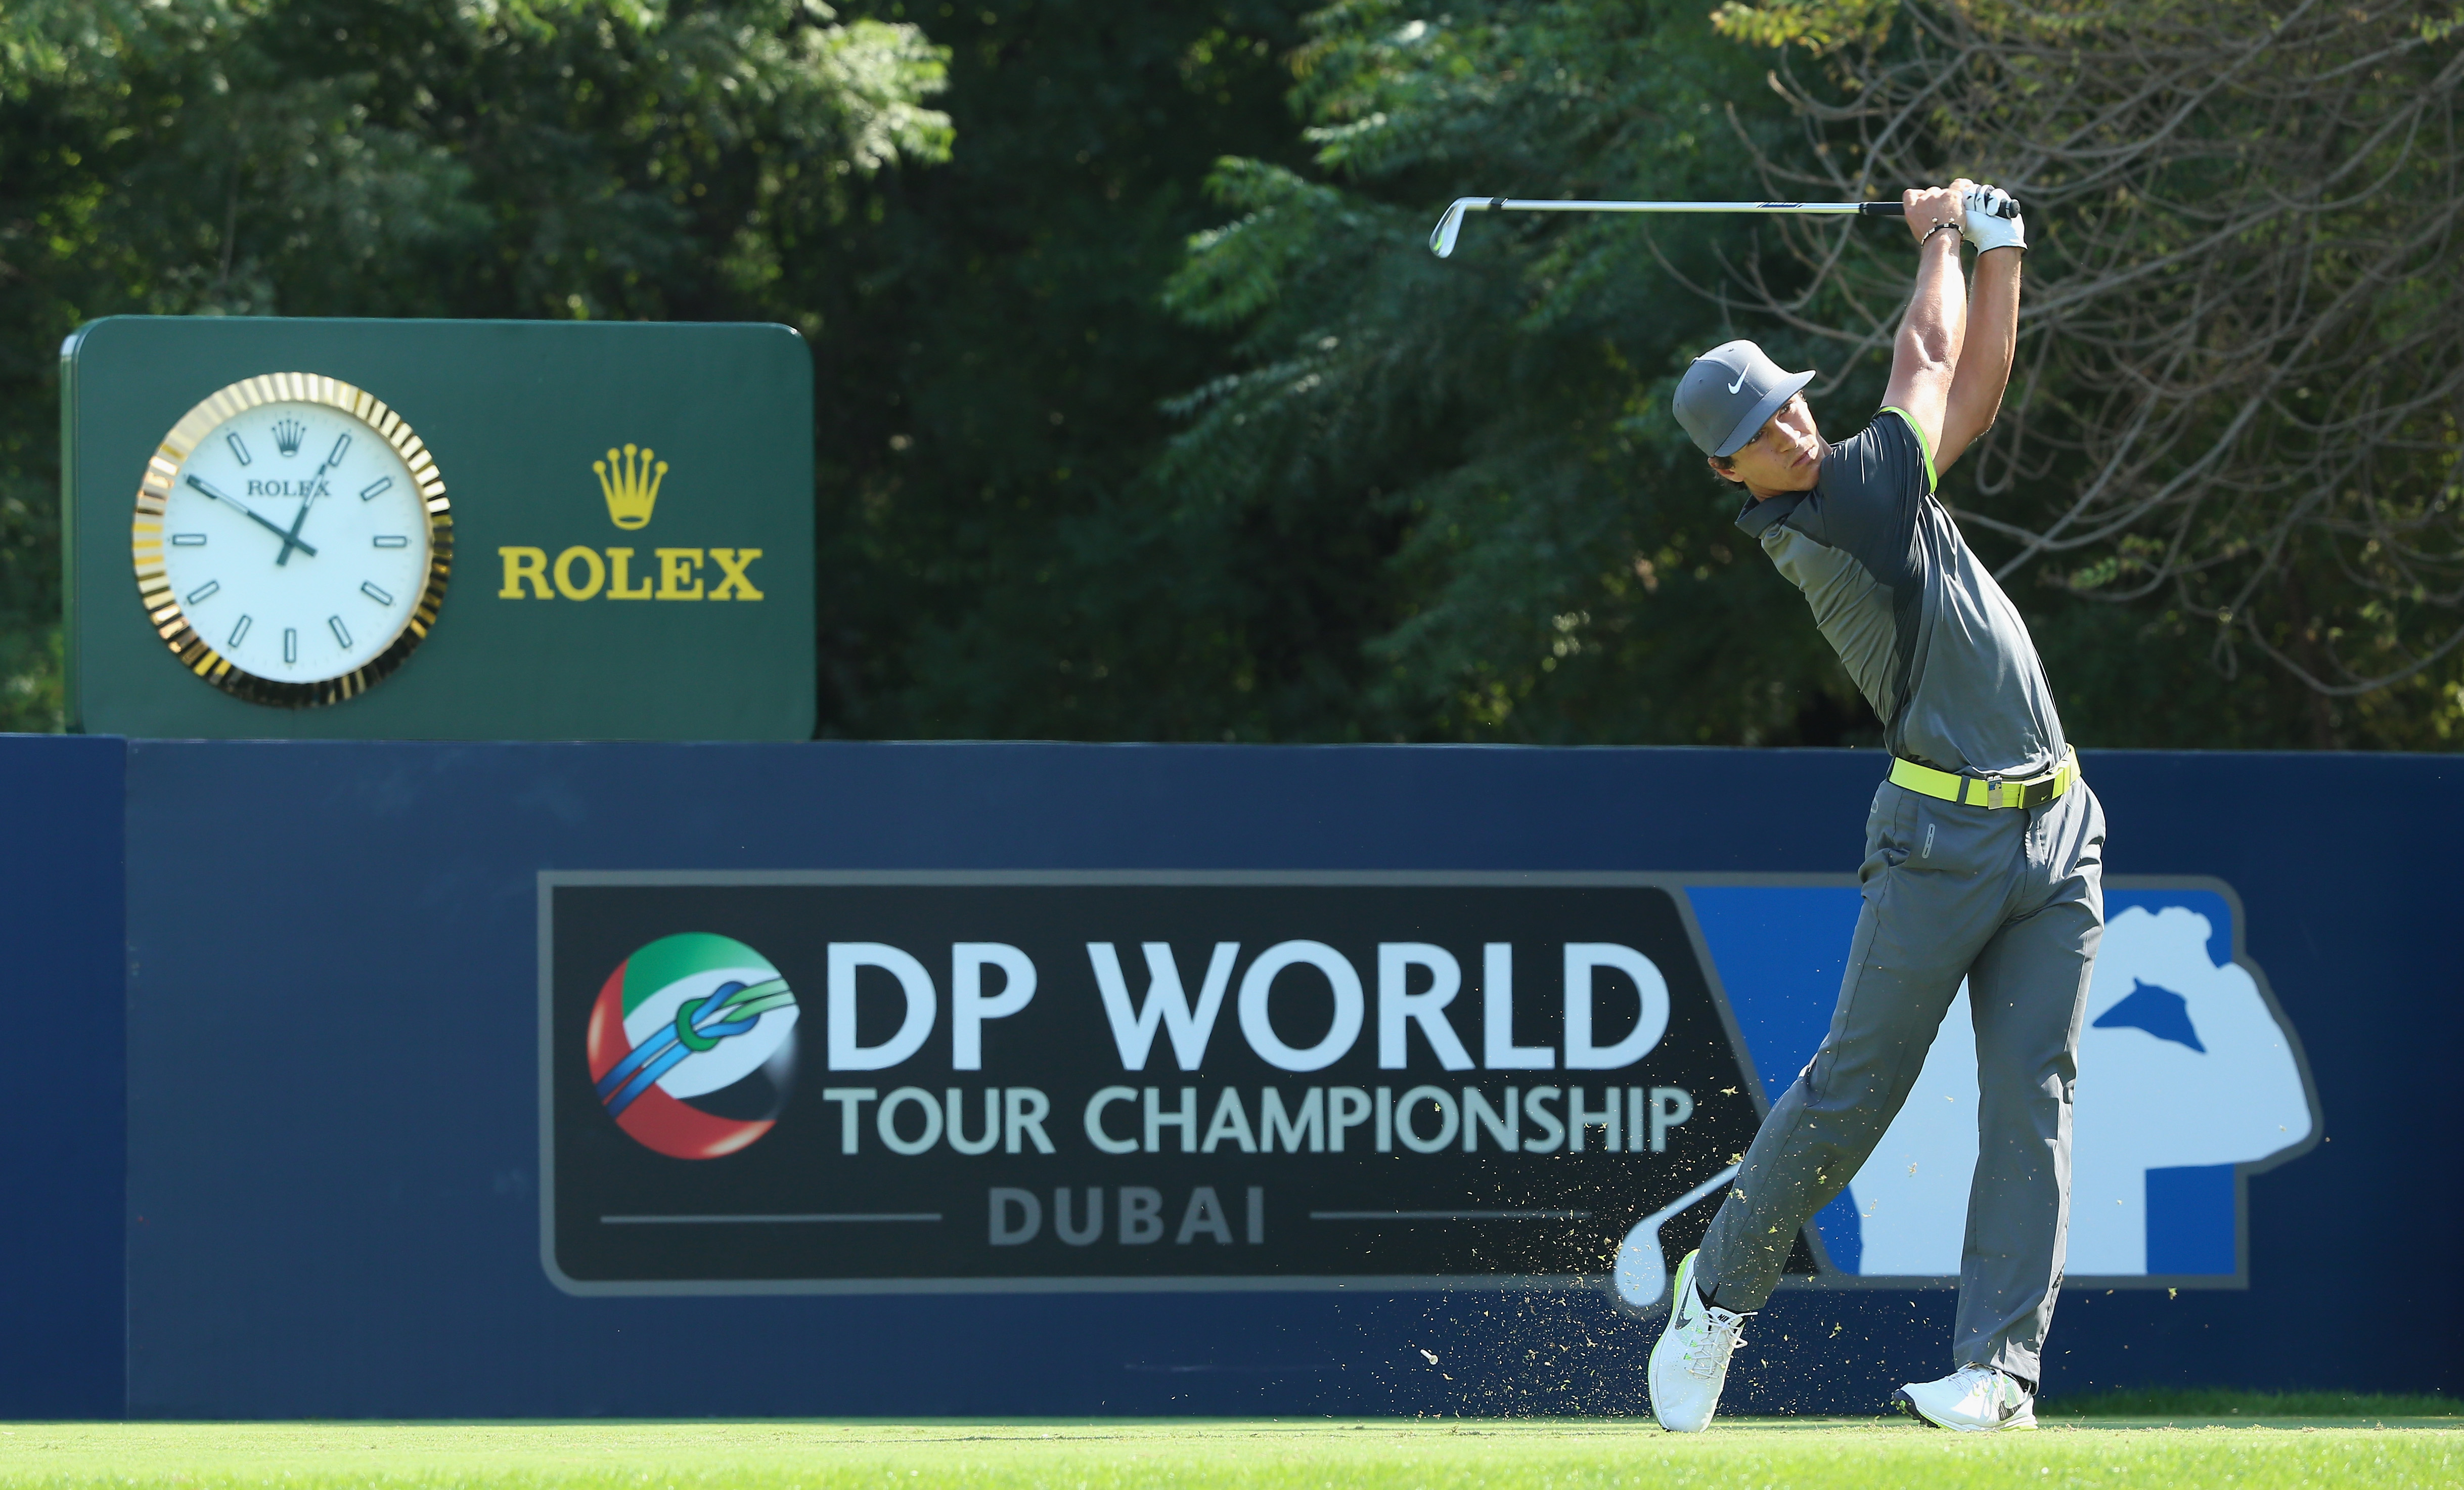 Thorbjorn Olesen of Denmark hits his tee-shot on the fourth hole during the third round. Thorbjorn shot a third-round 69 to round out the four-way tie between himself, Rory McIlroy, Tyrrell Hatton and Victor Dubuisson.